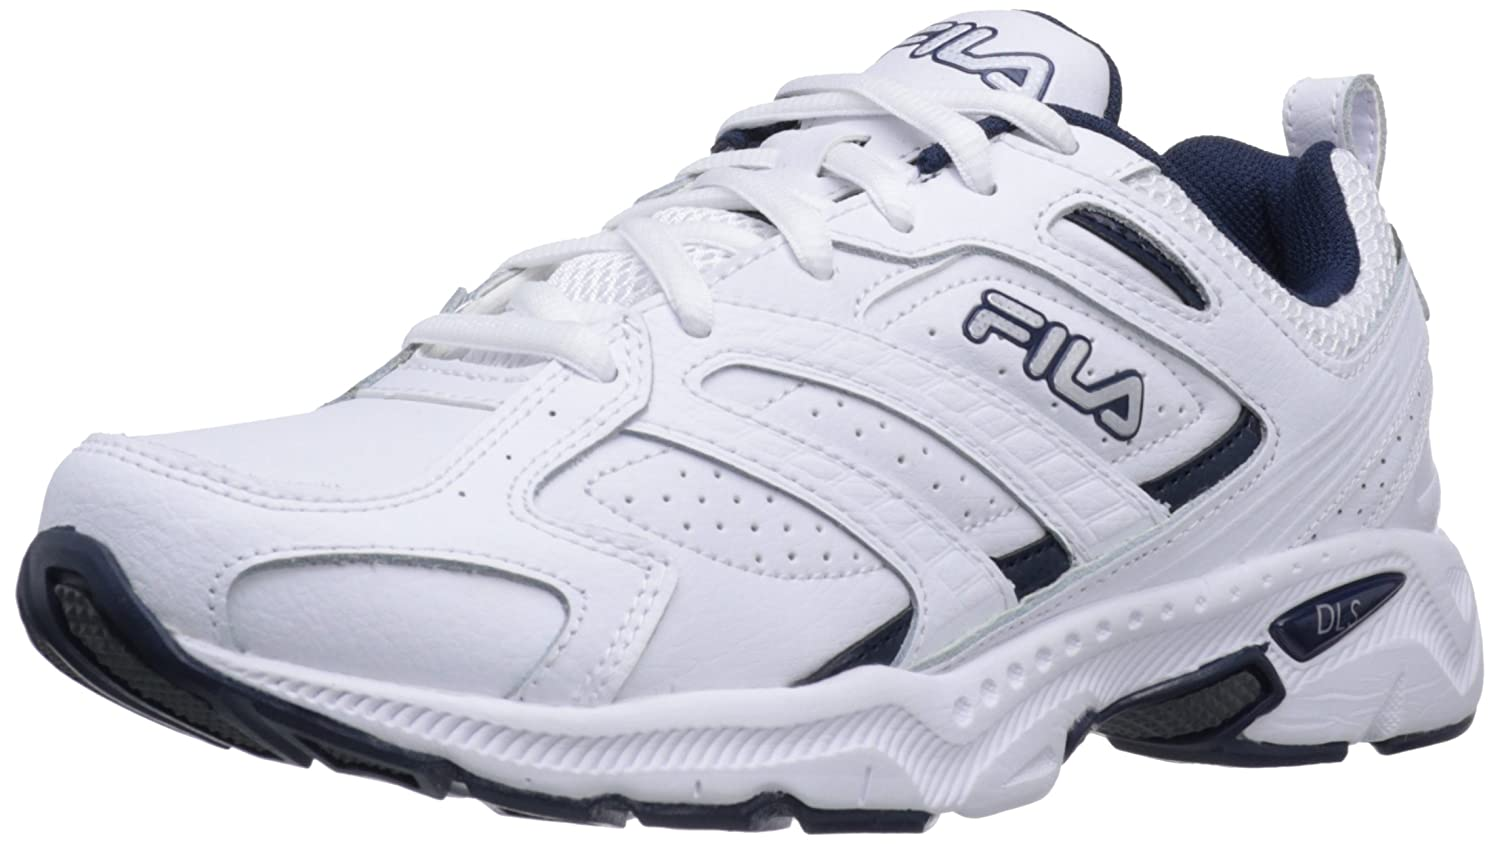 Capture Fila